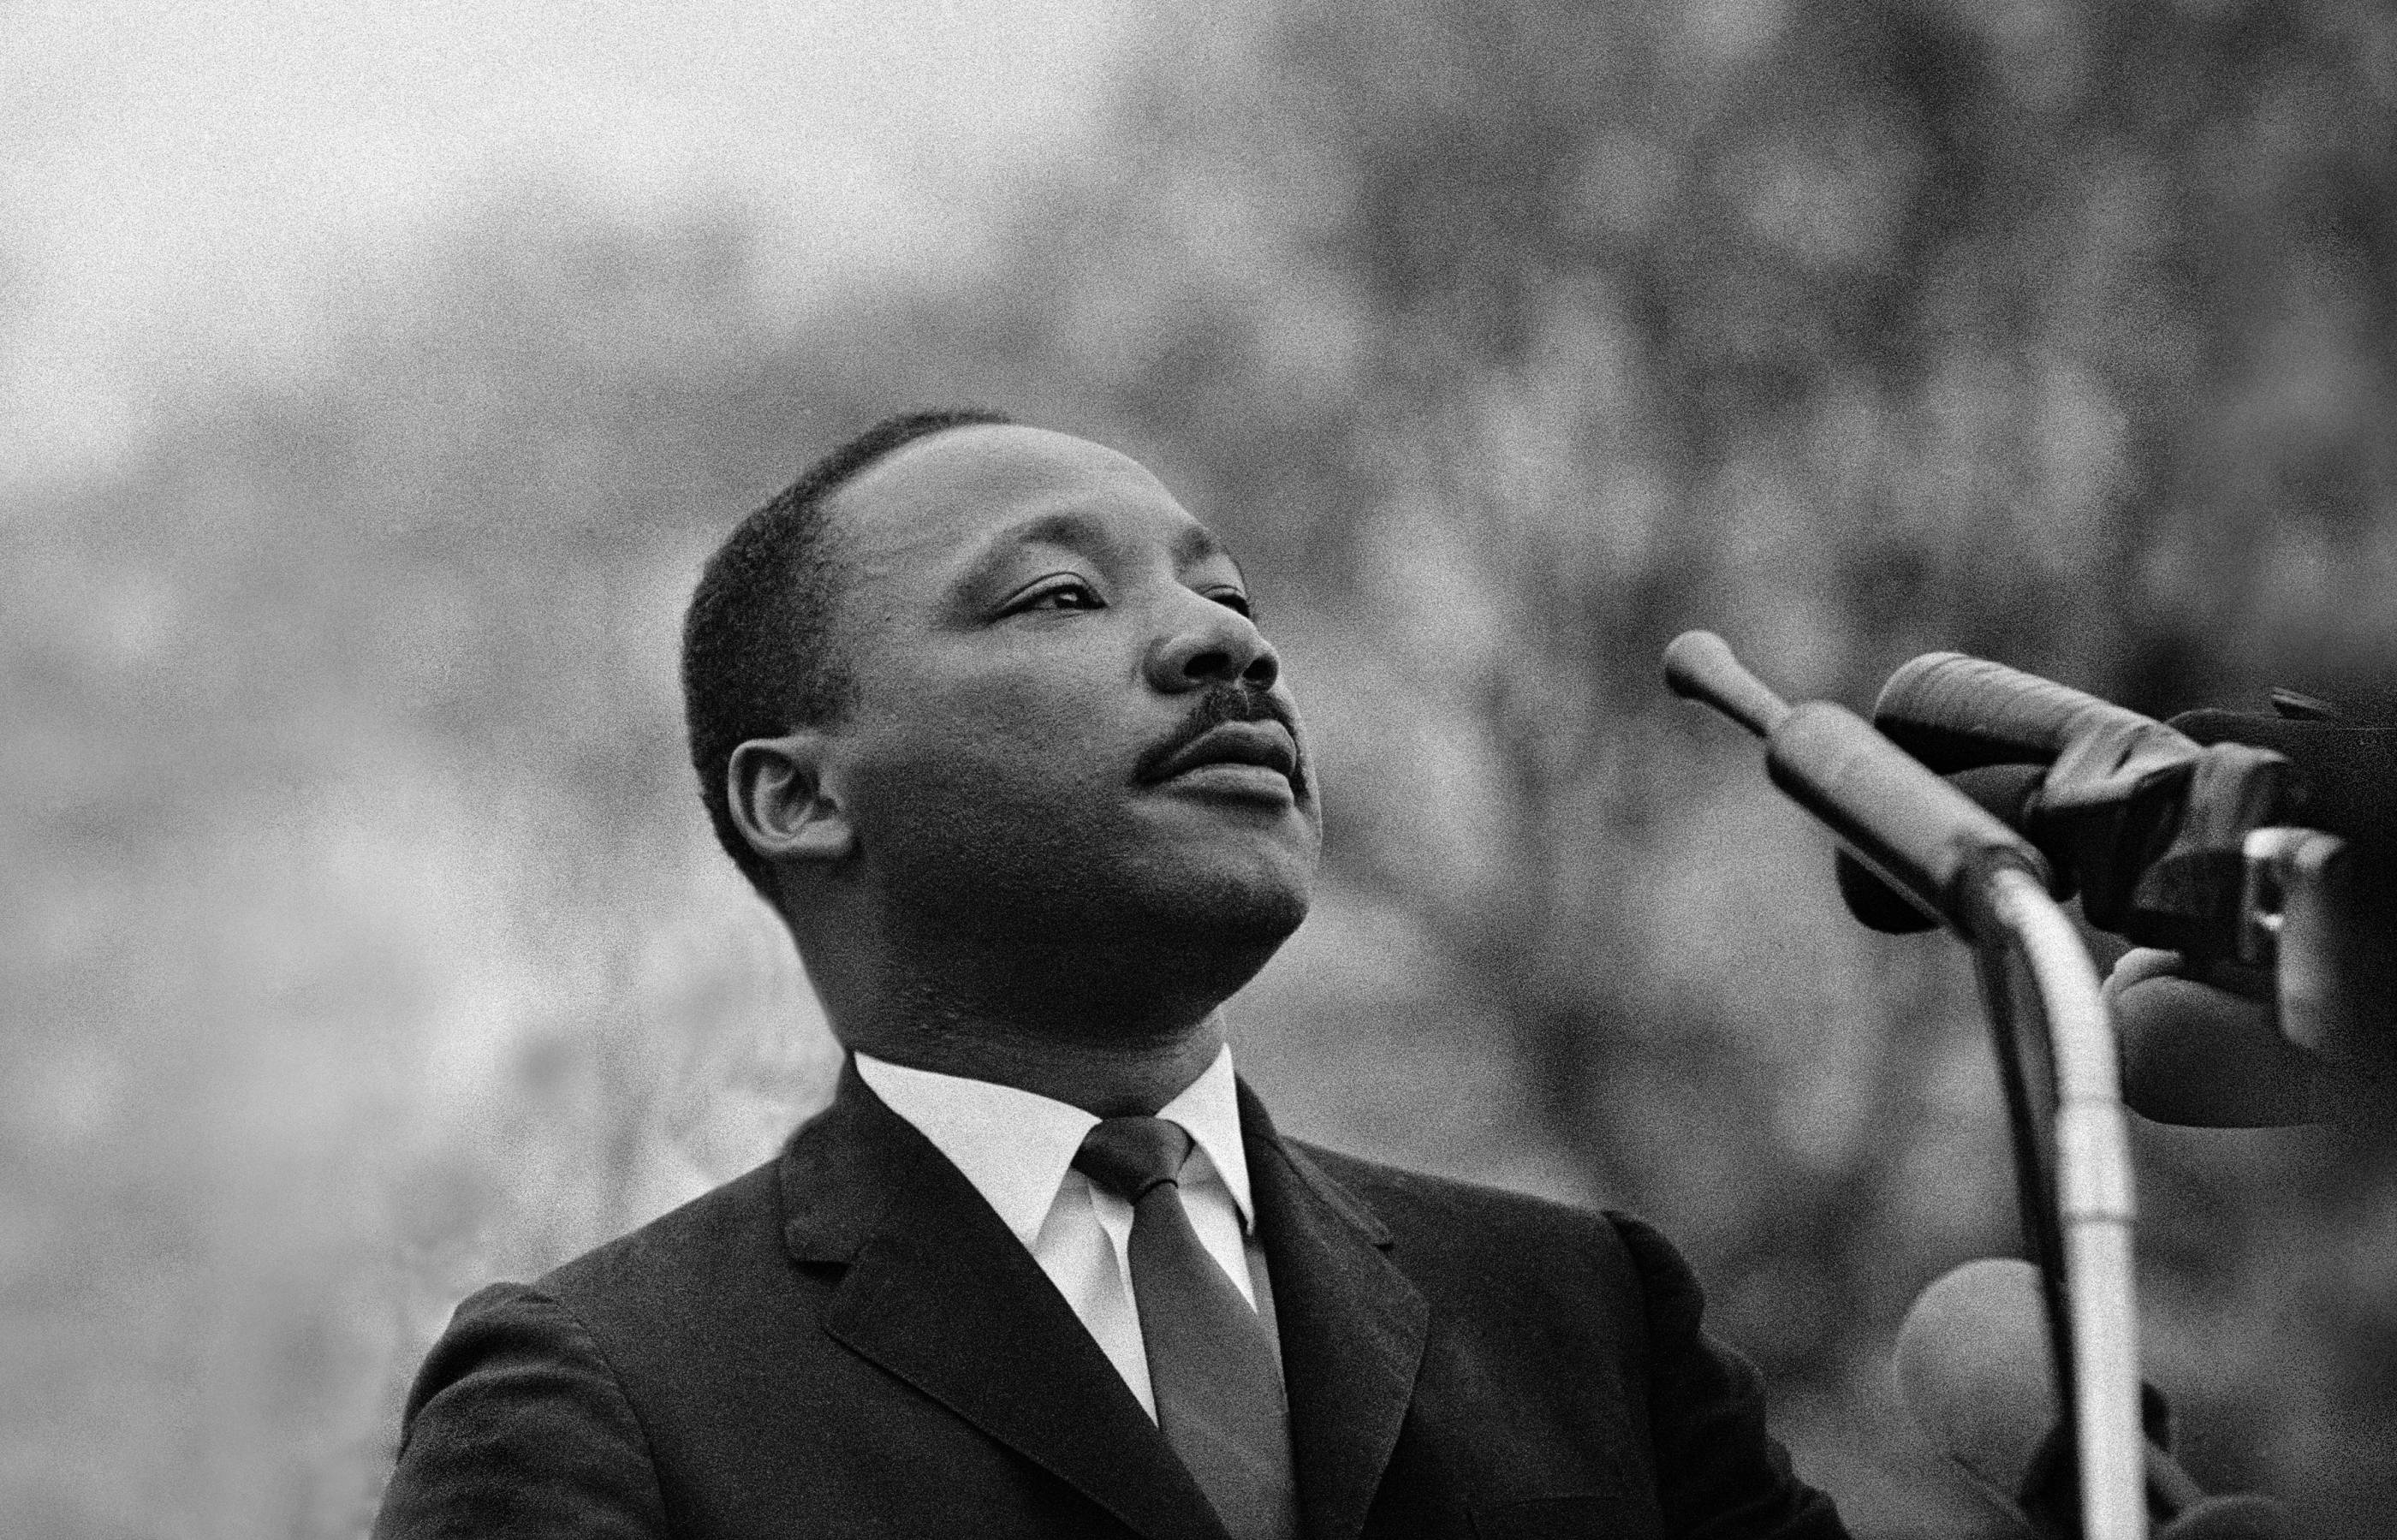 Dr. Martin Luther King, Jr. stands in front of several microphones and looks over a crowd of 25,000 out of frame in front of him